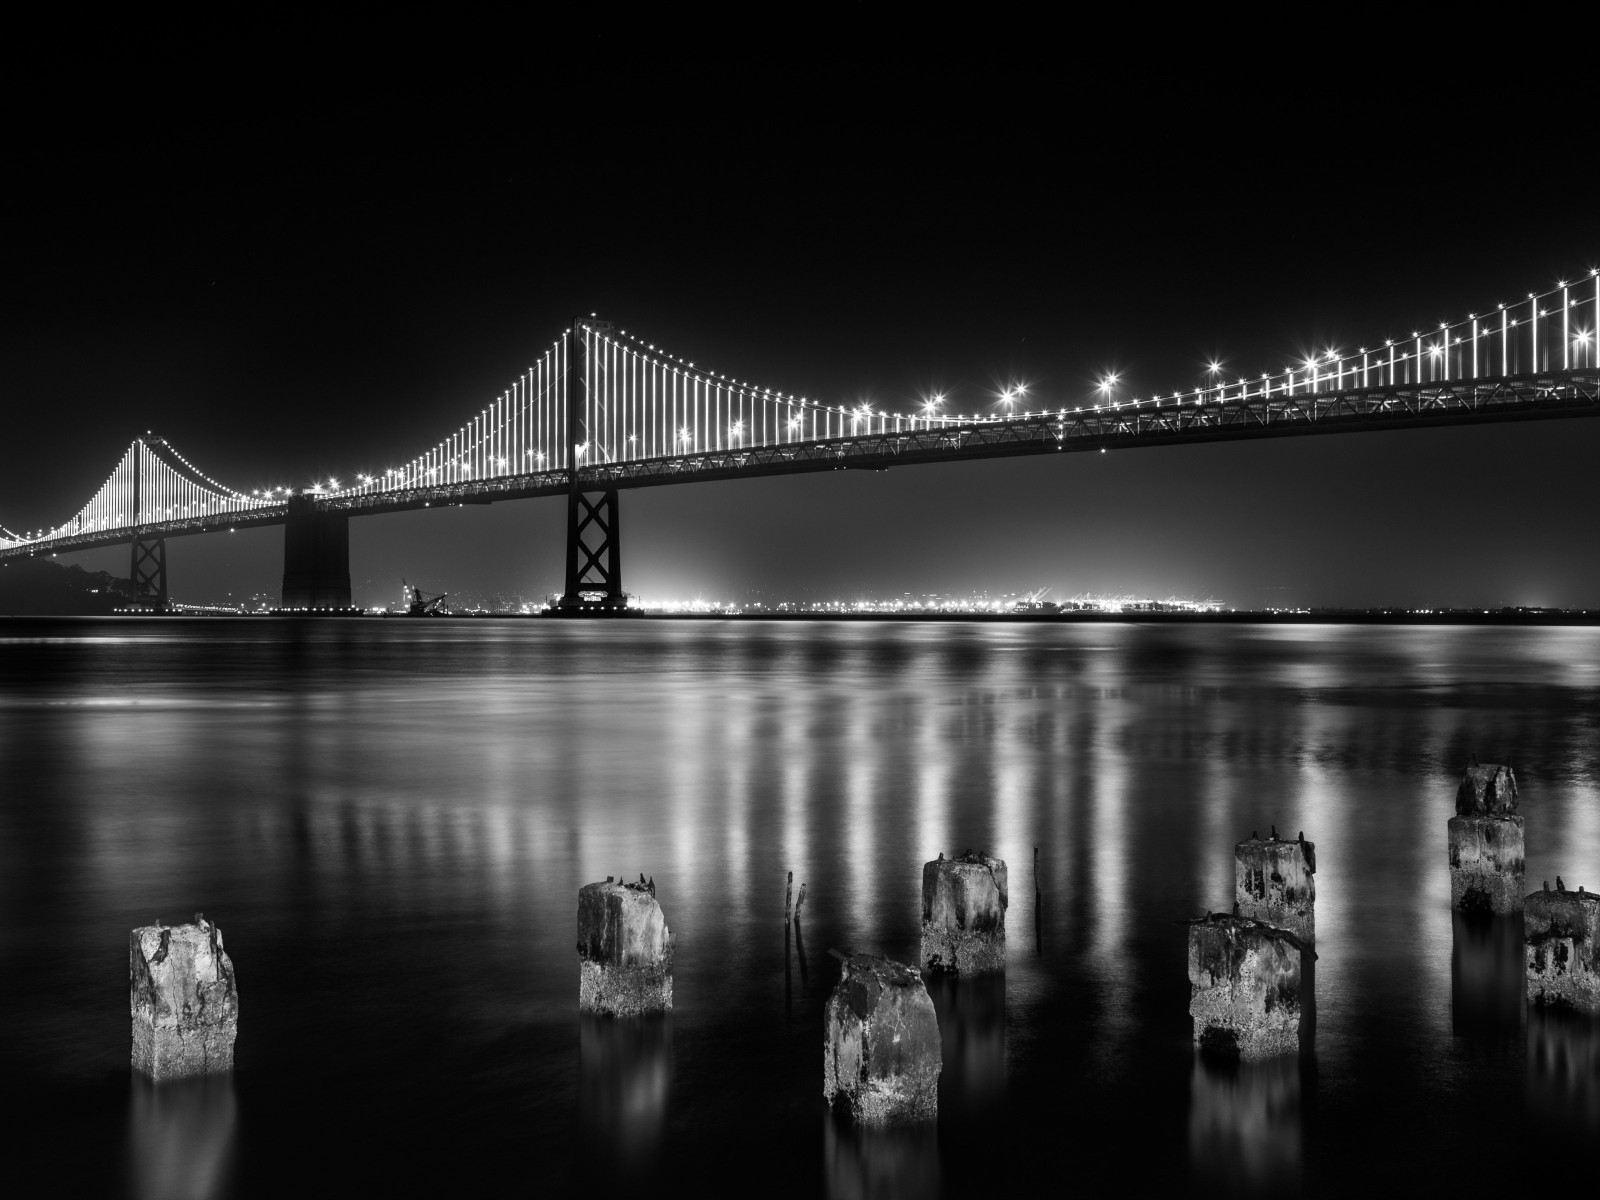 Bay bridge from San Francisco | 1600x1200 wallpaper